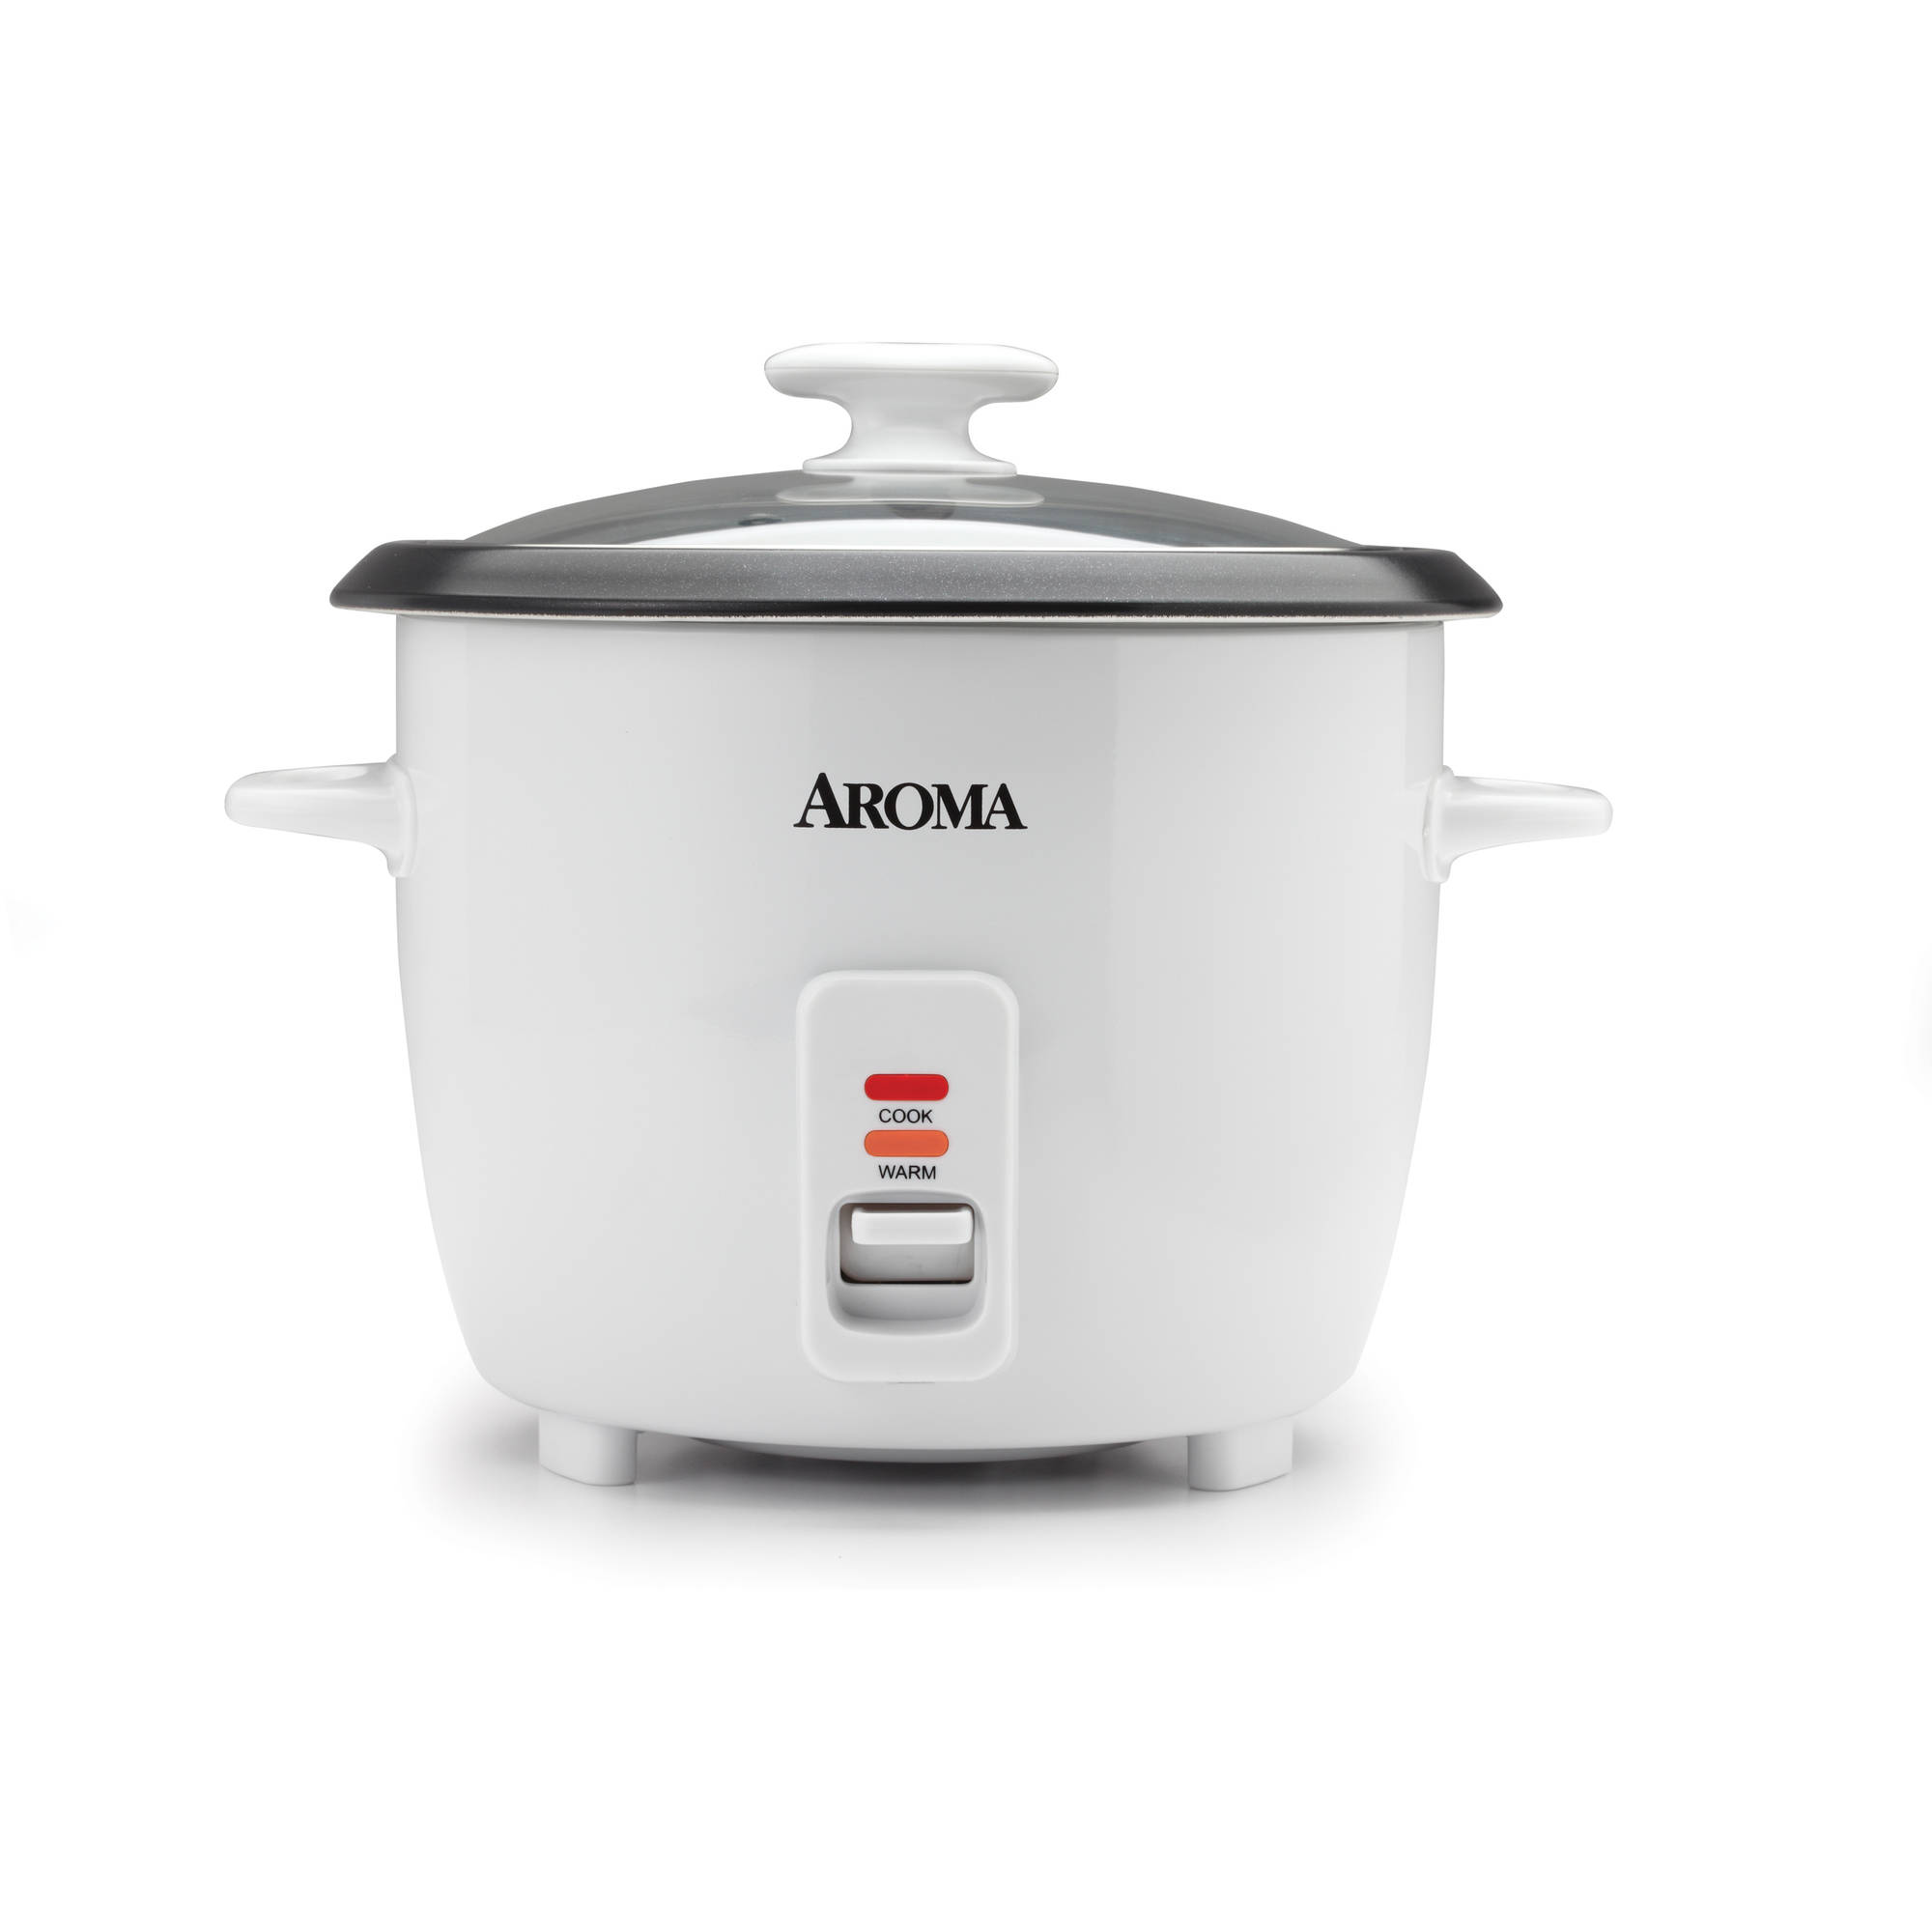 aroma rice cooker wiring diagram simple of dna replication 14 cup steamer tray pot style cooking